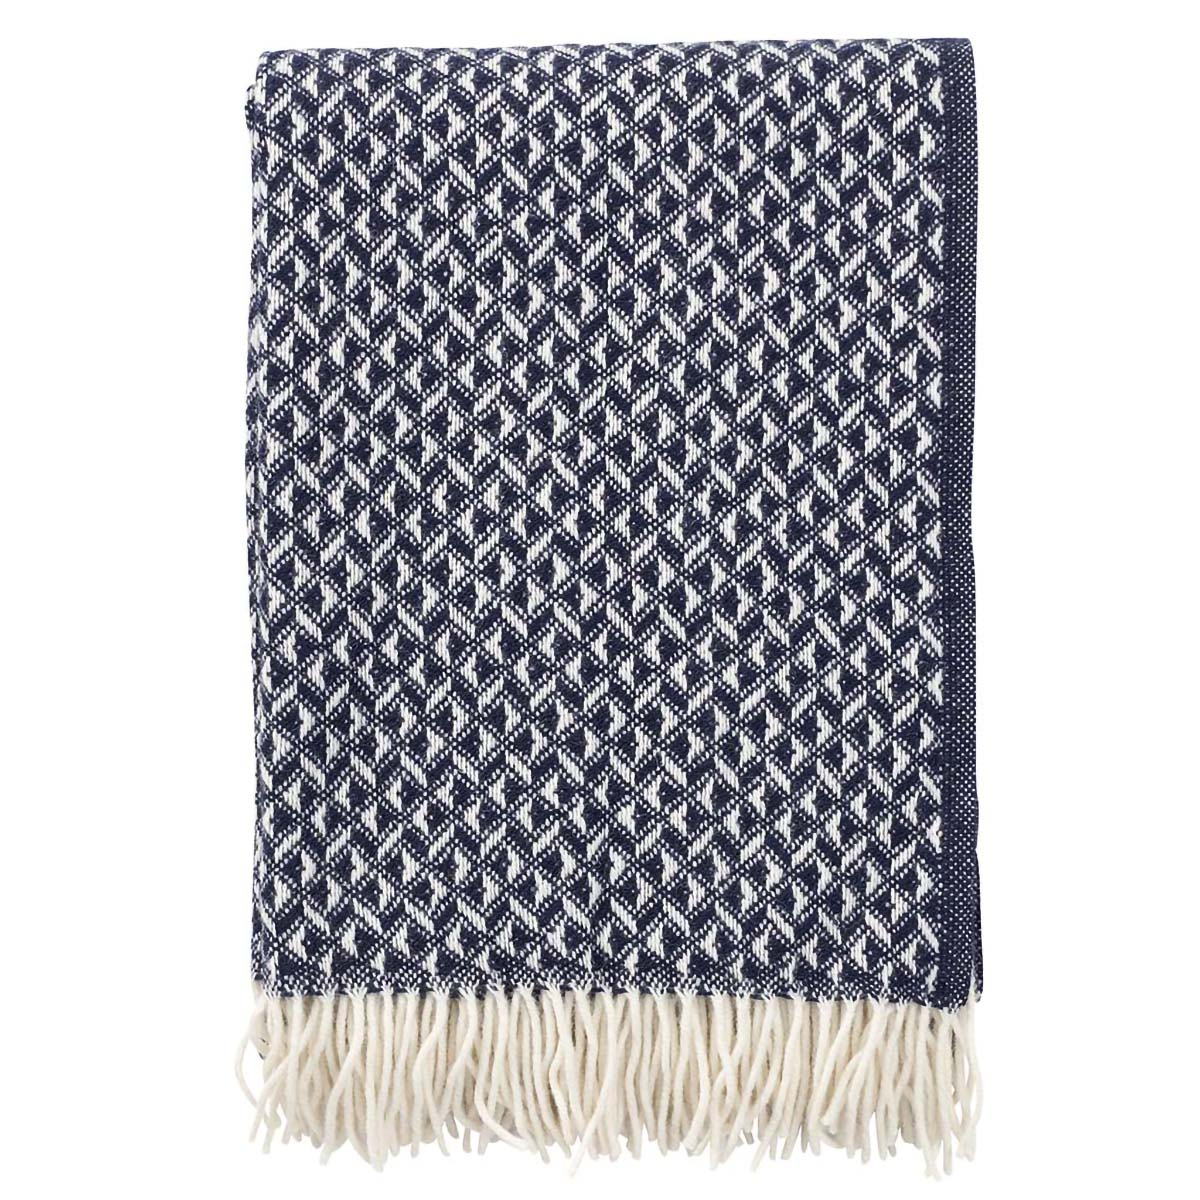 Dark Blue Anna Blanket, Klippan